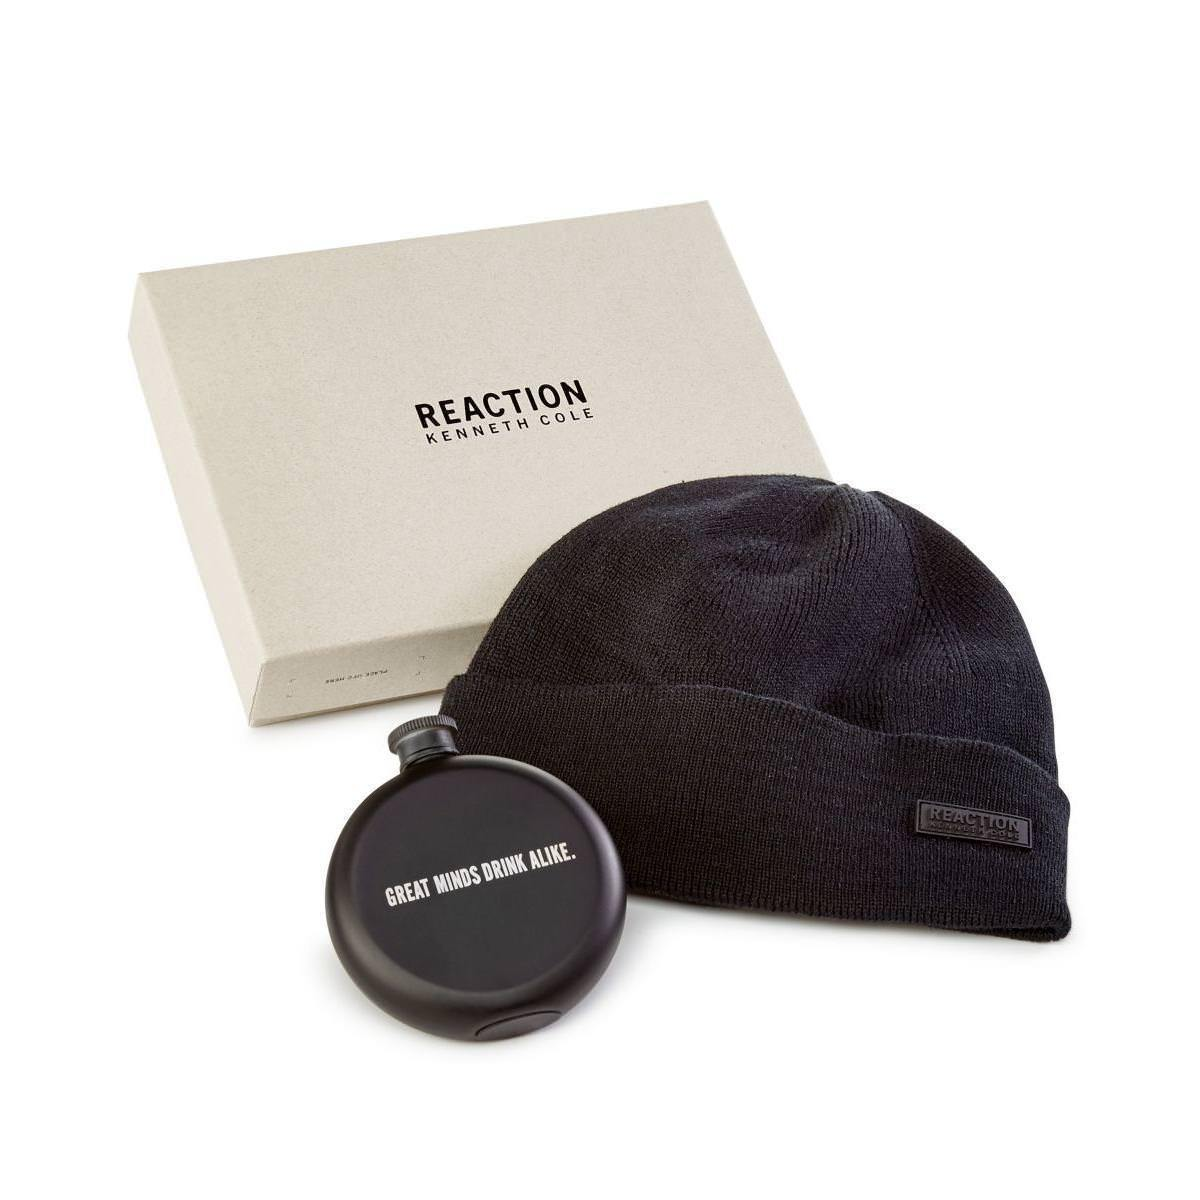 Kenneth Cole Mens Flask Gift Set Beanie Hat Blk One Size, $55